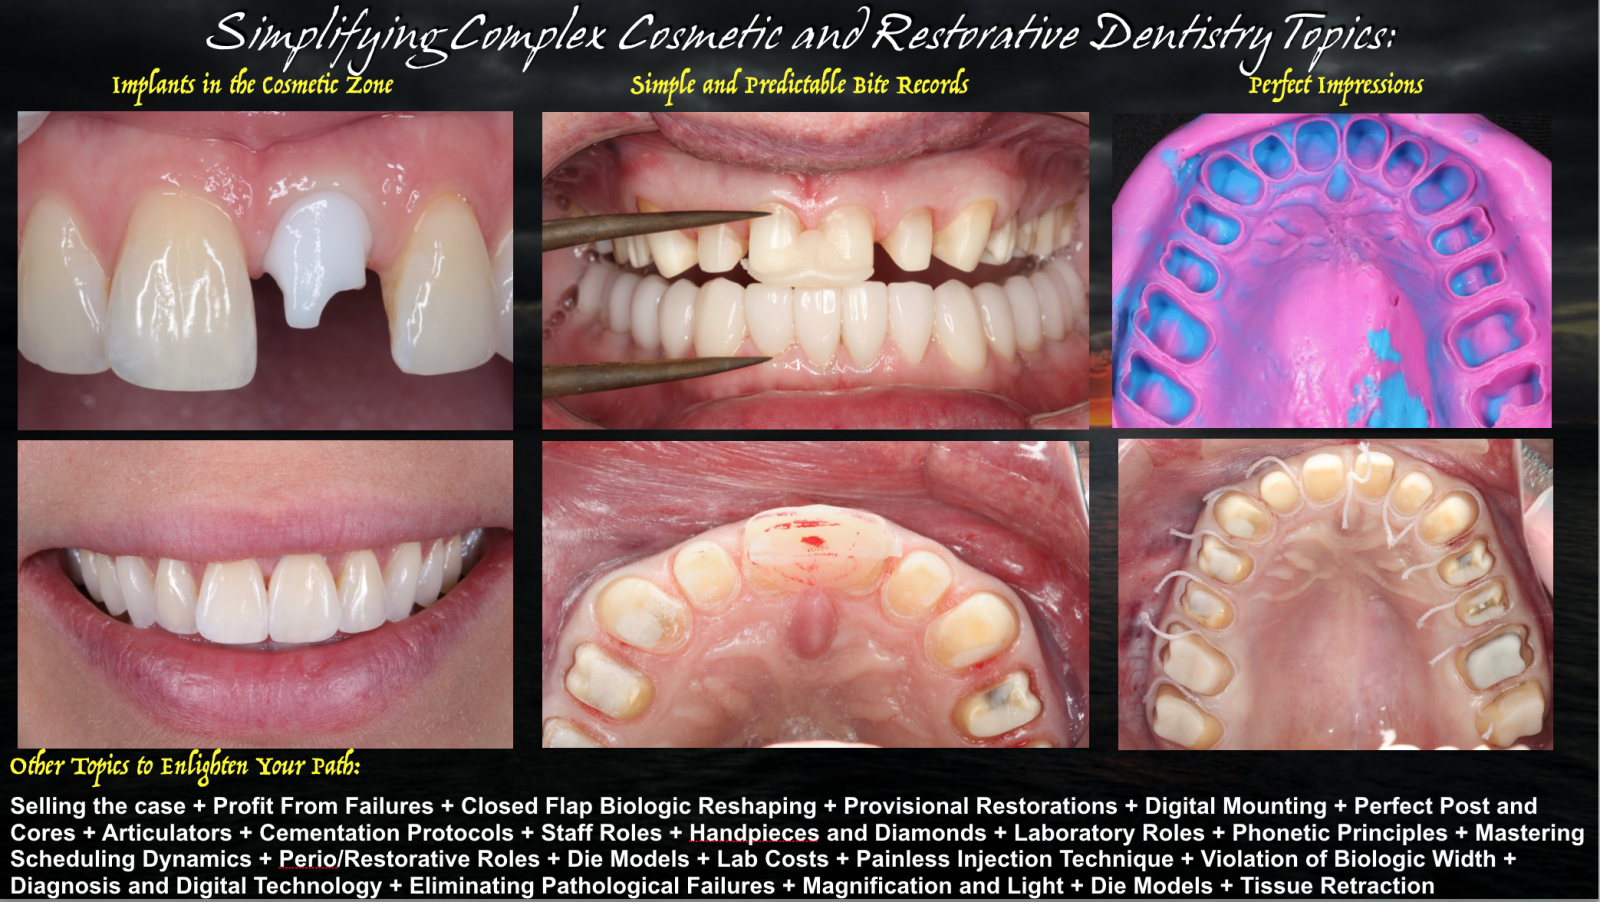 Continuing Education Seminars - William C  Strupp DDS and